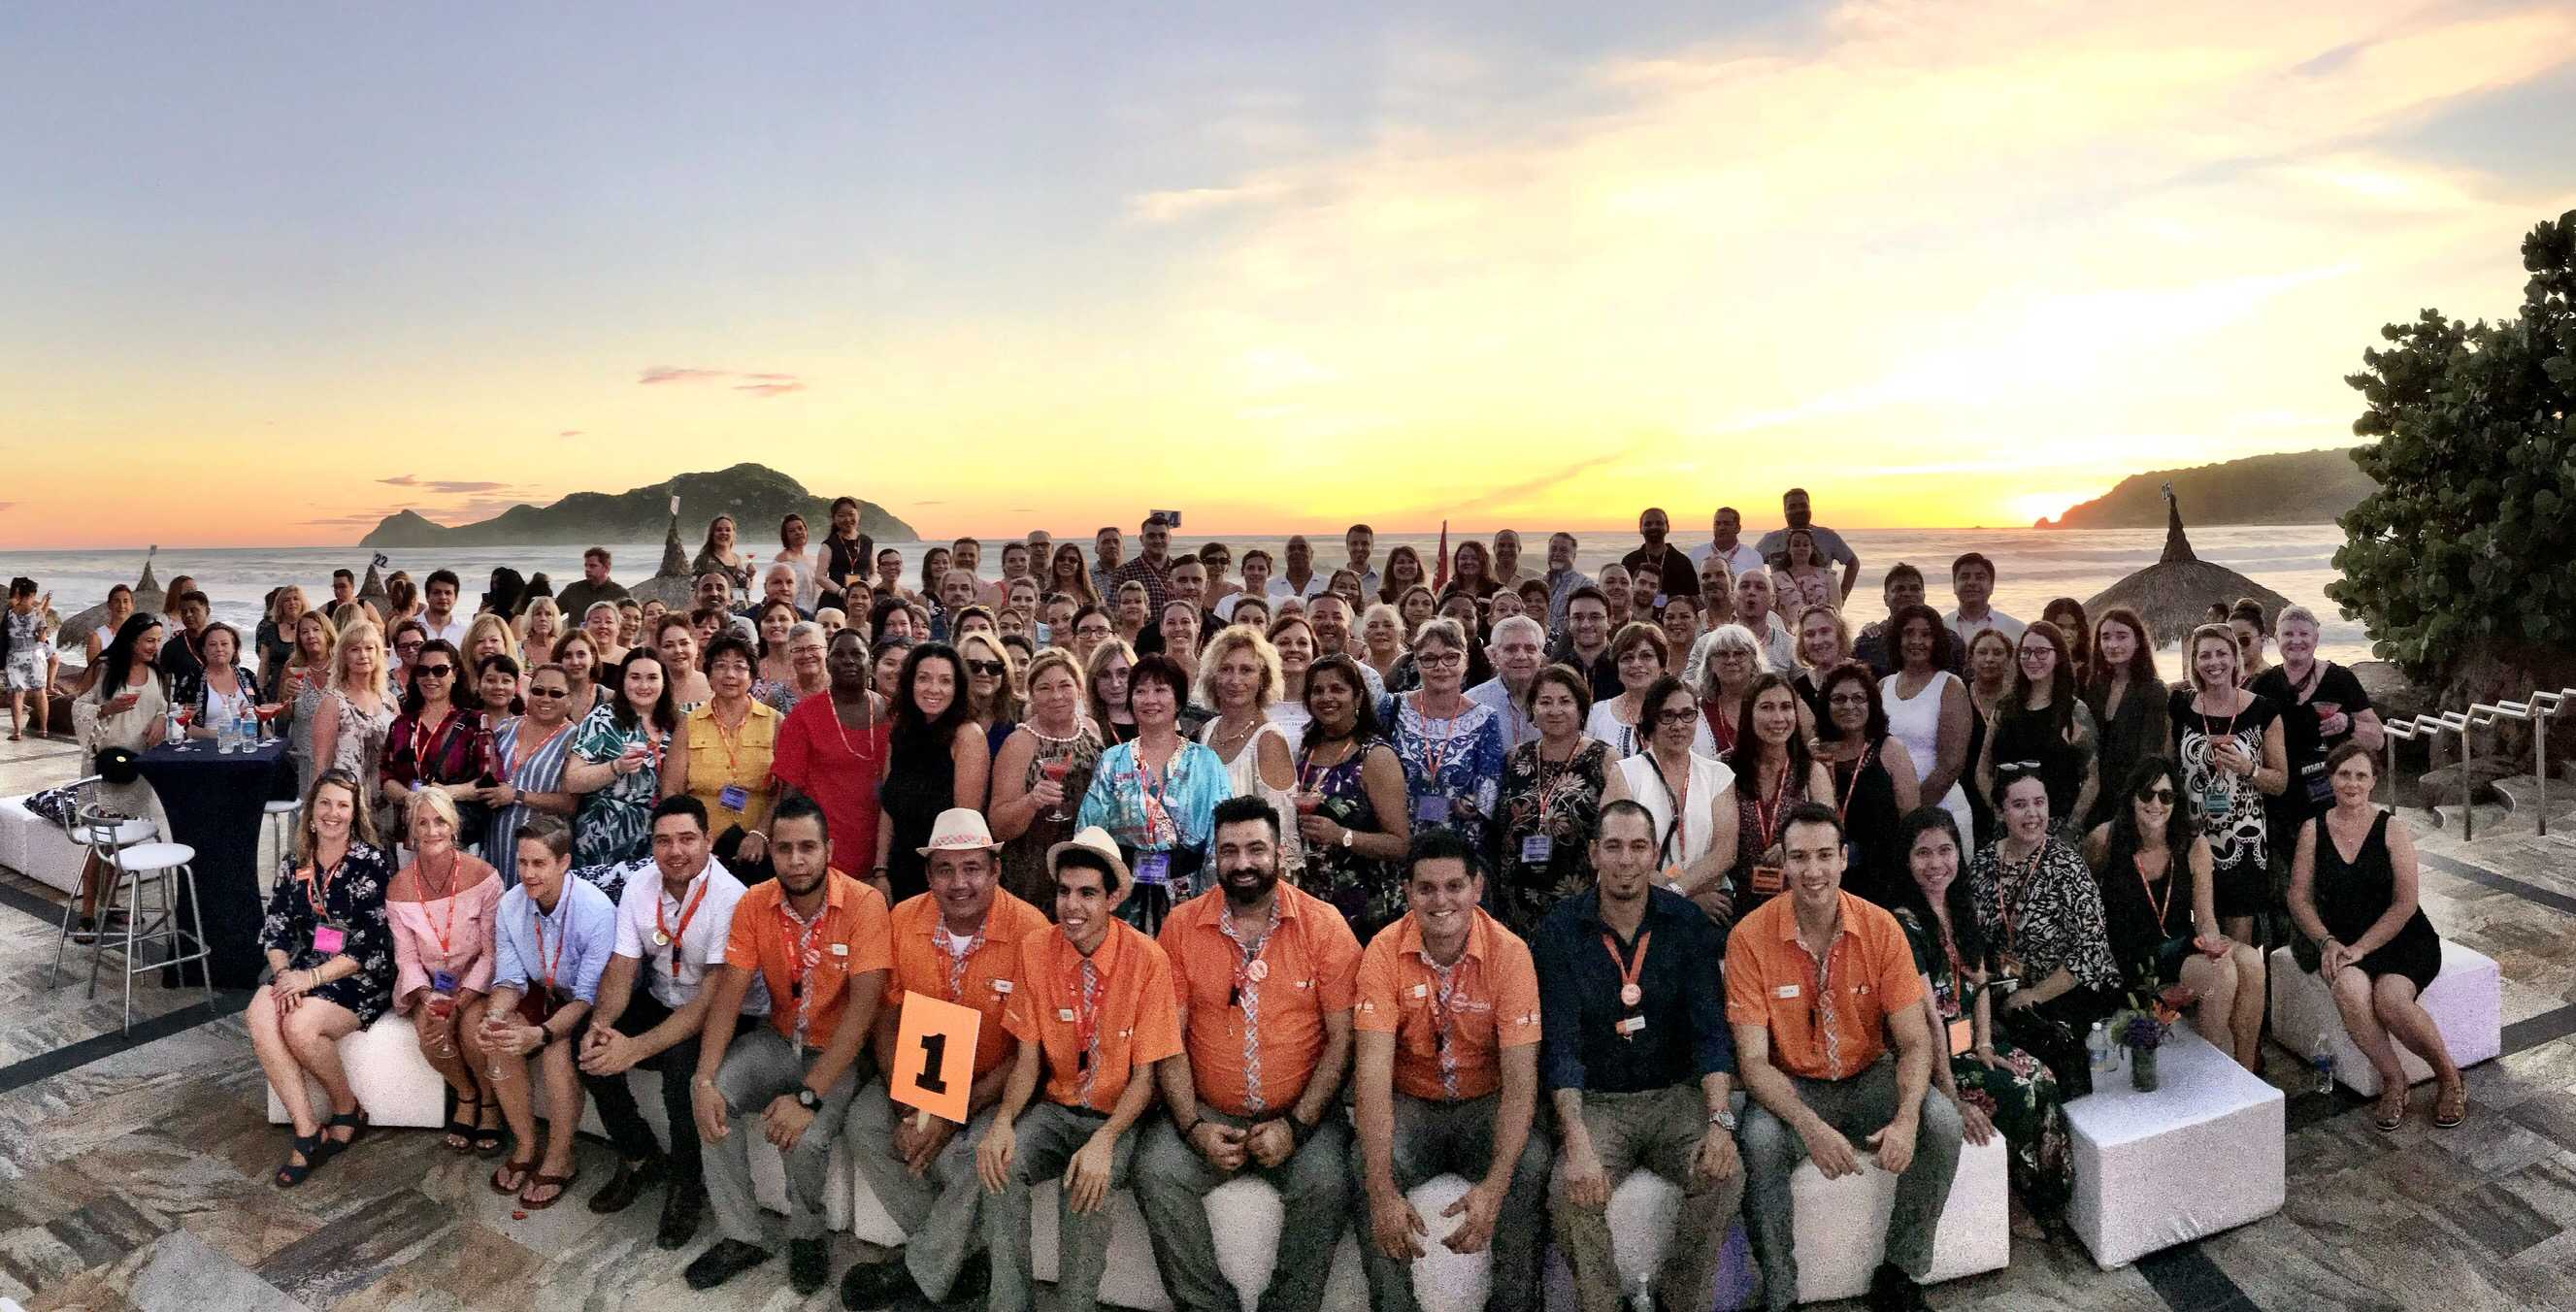 Say cheese! Attendees pose for a group shot as part of Sunwing's FAM trip in Mazatlán this past weekend. Photo courtesy of Sunwing Travel Group.